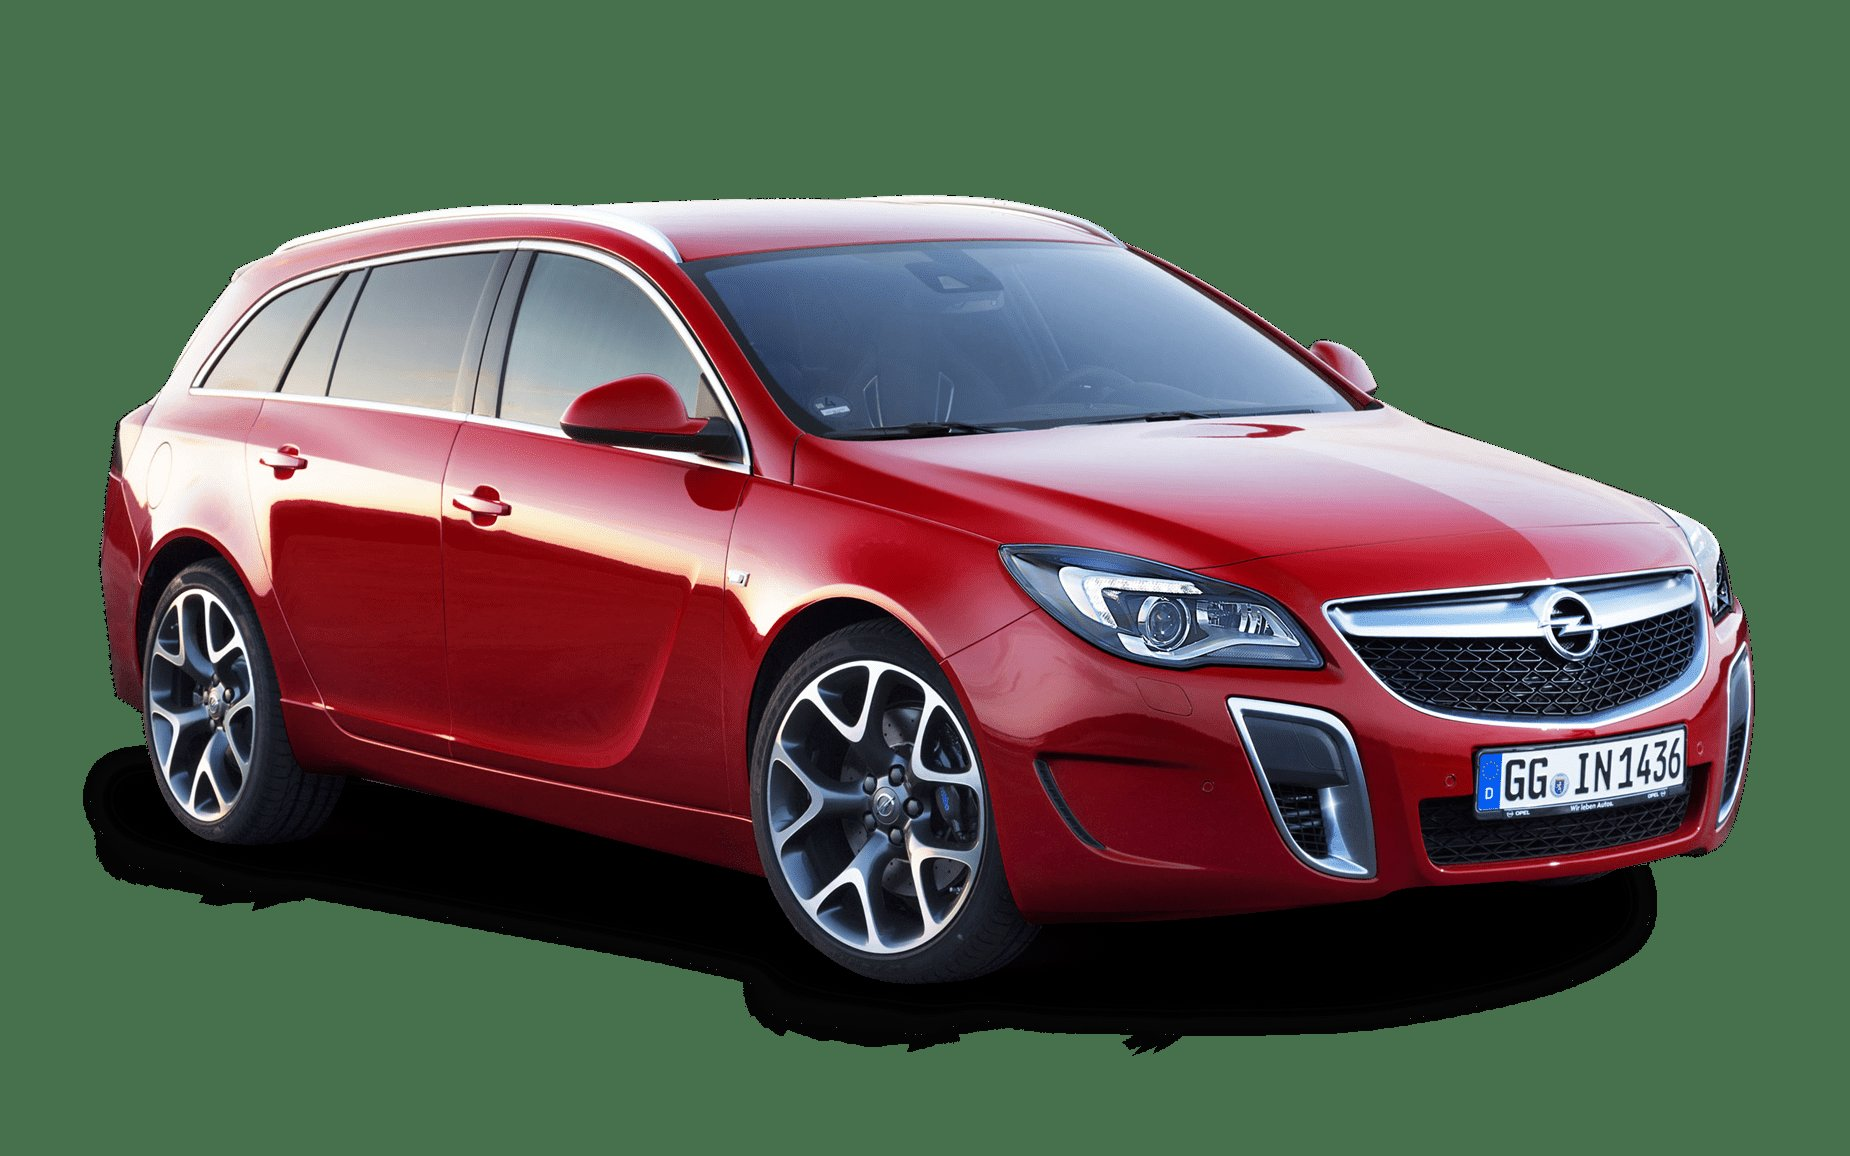 Latest Opel Car Png Images Free Download